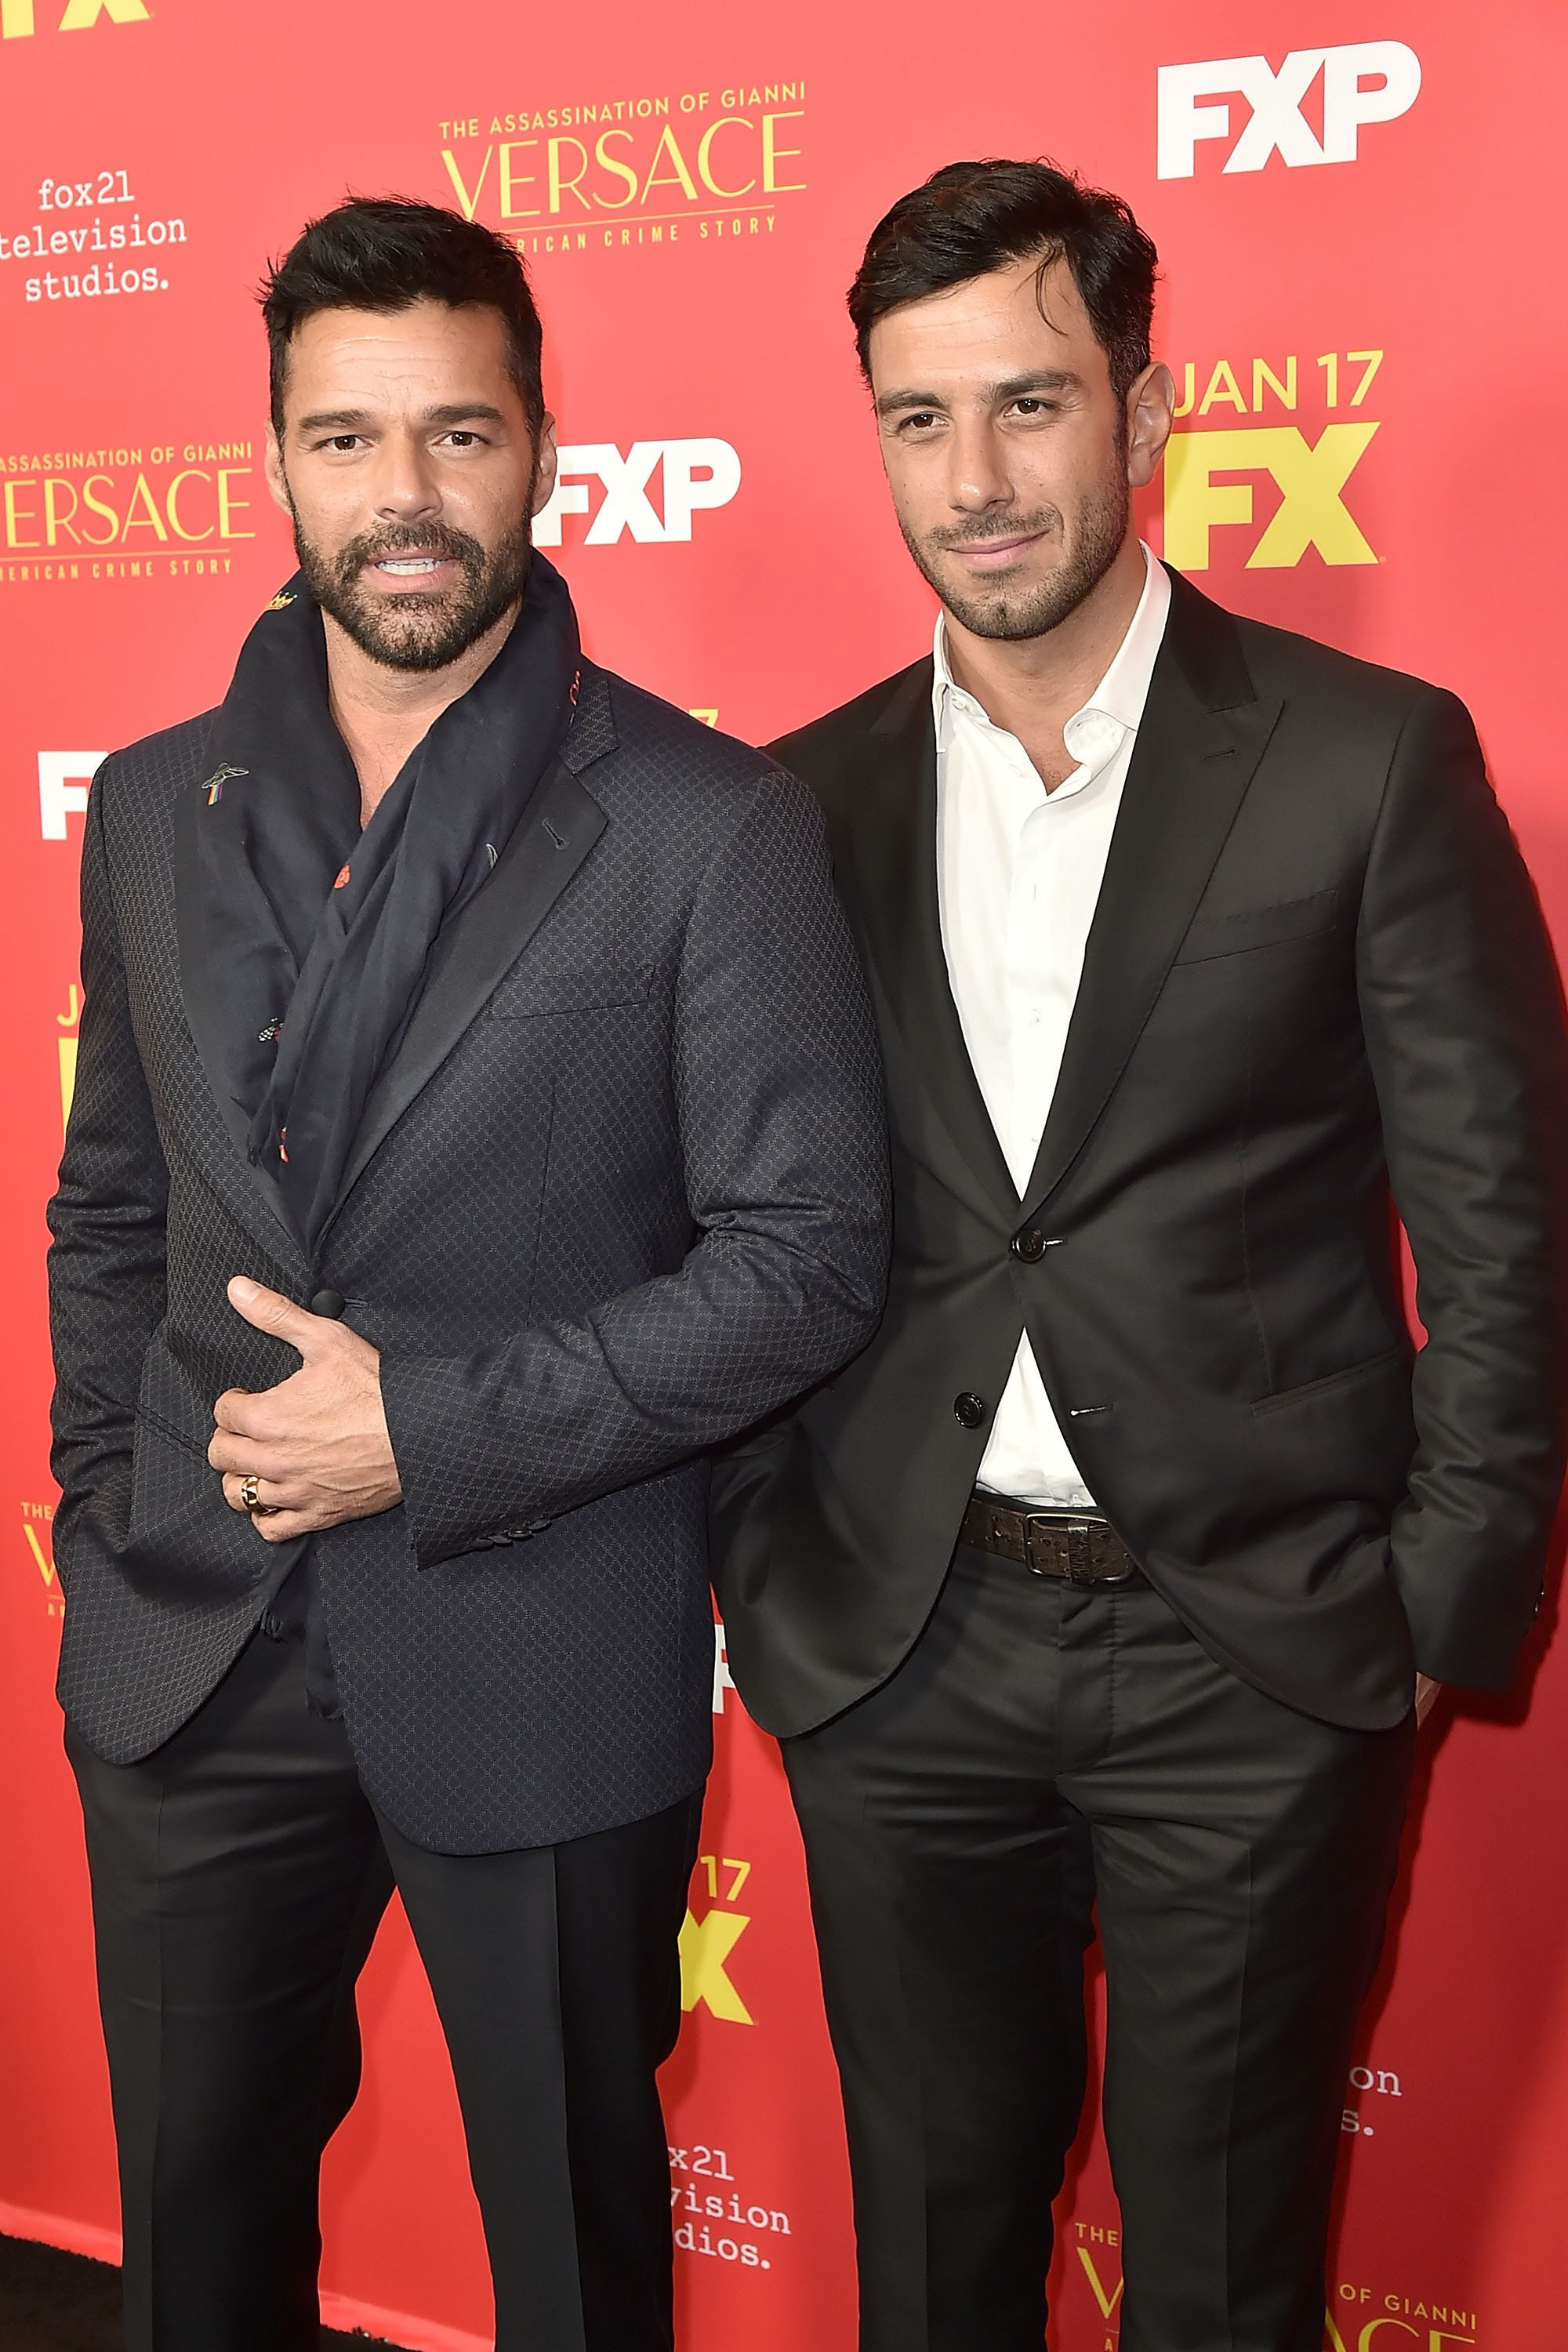 HOLLYWOOD, CA - JANUARY 08:  Ricky Martin and Jwan Yosef attend the Premiere Of FX's 'The Assassination Of Gianni Versace: American Crime Story' - Arrivals at ArcLight Hollywood on January 8, 2018 in Hollywood, California.  (Photo by David Crotty/Patrick McMullan via Getty Images)